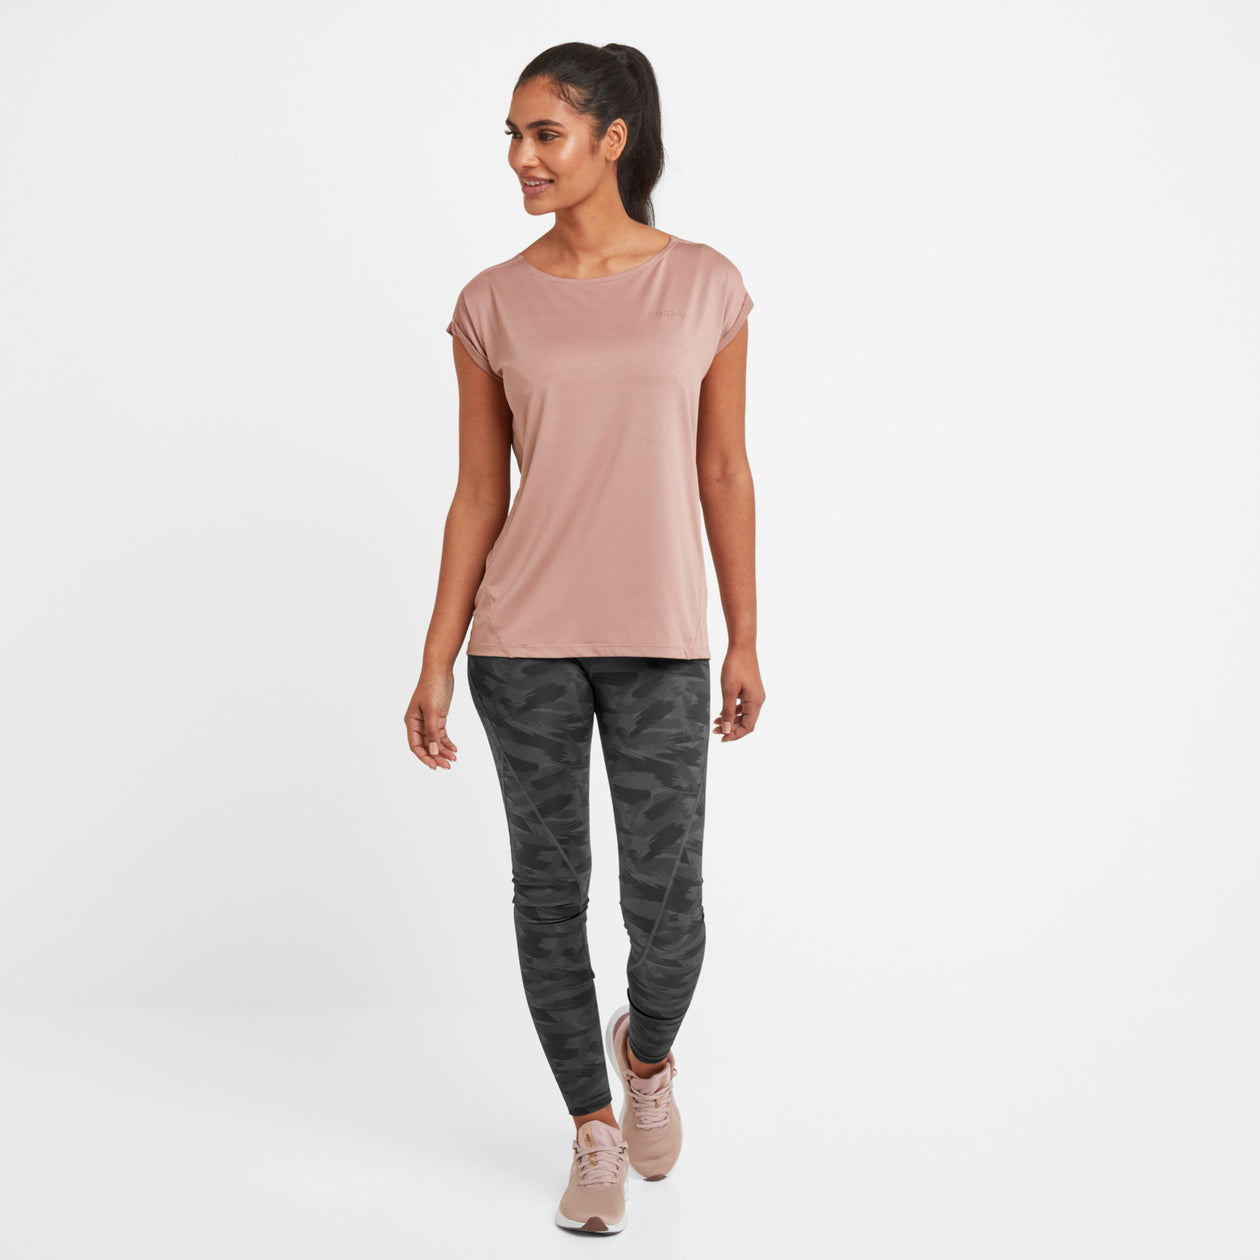 Raywell Womens Tech T-Shirt - Faded Pink image 4